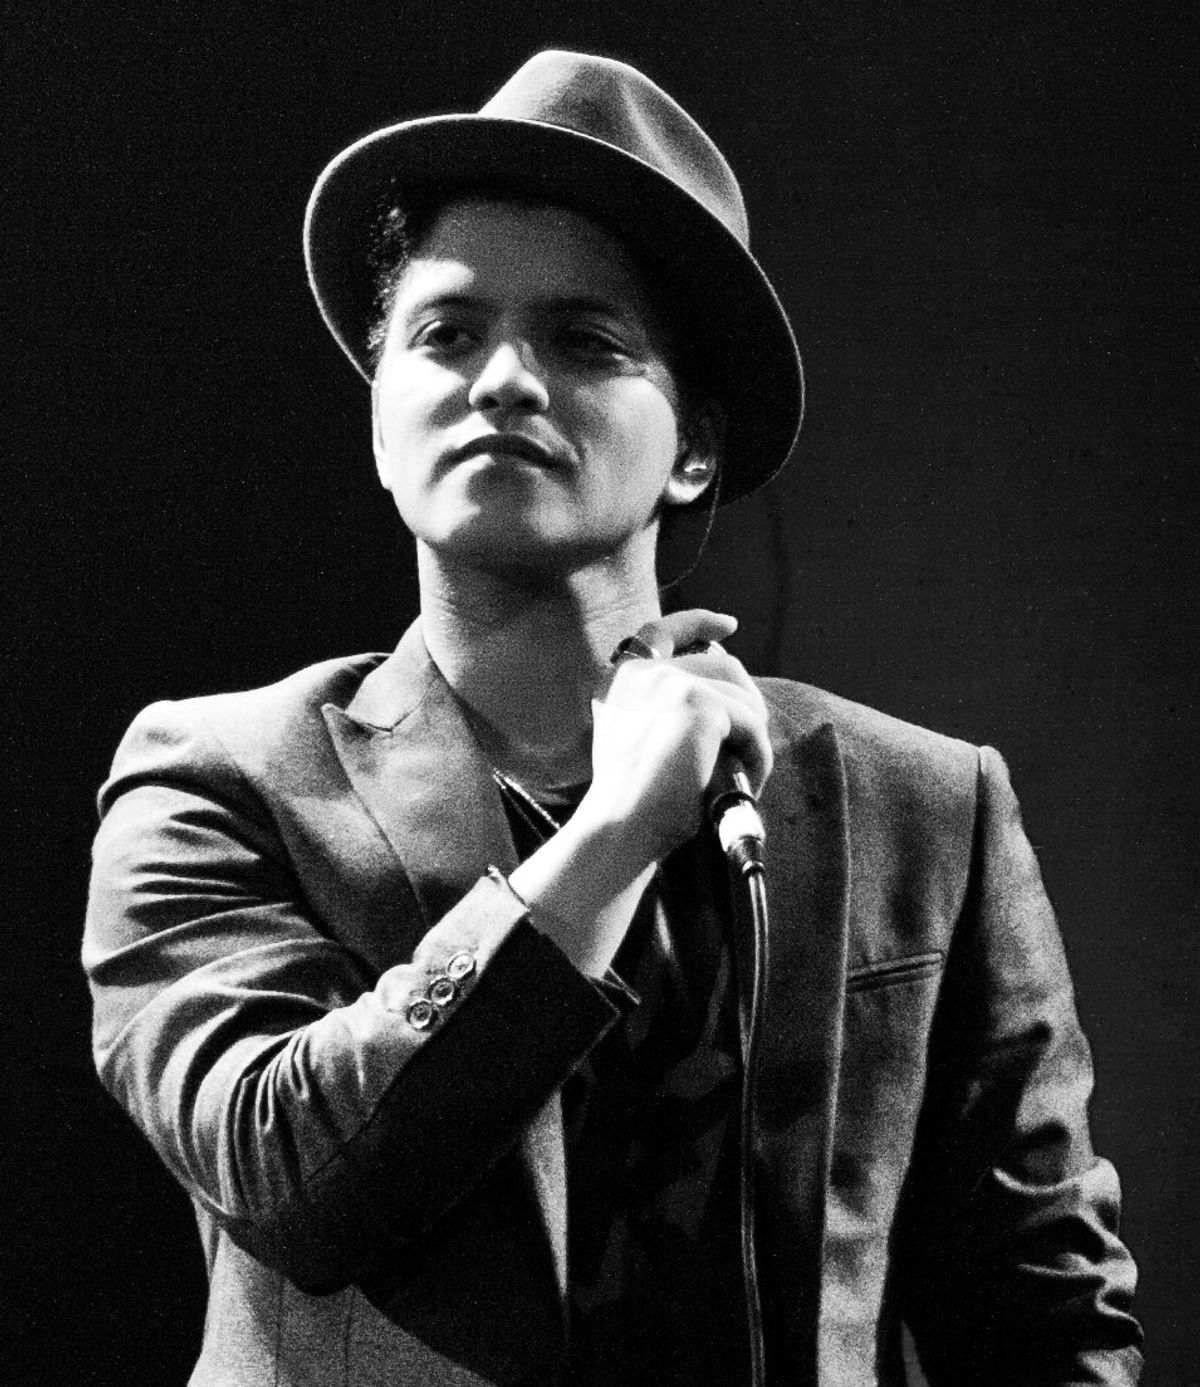 Bruno Mars' New Song Is More Sexual Than You Think